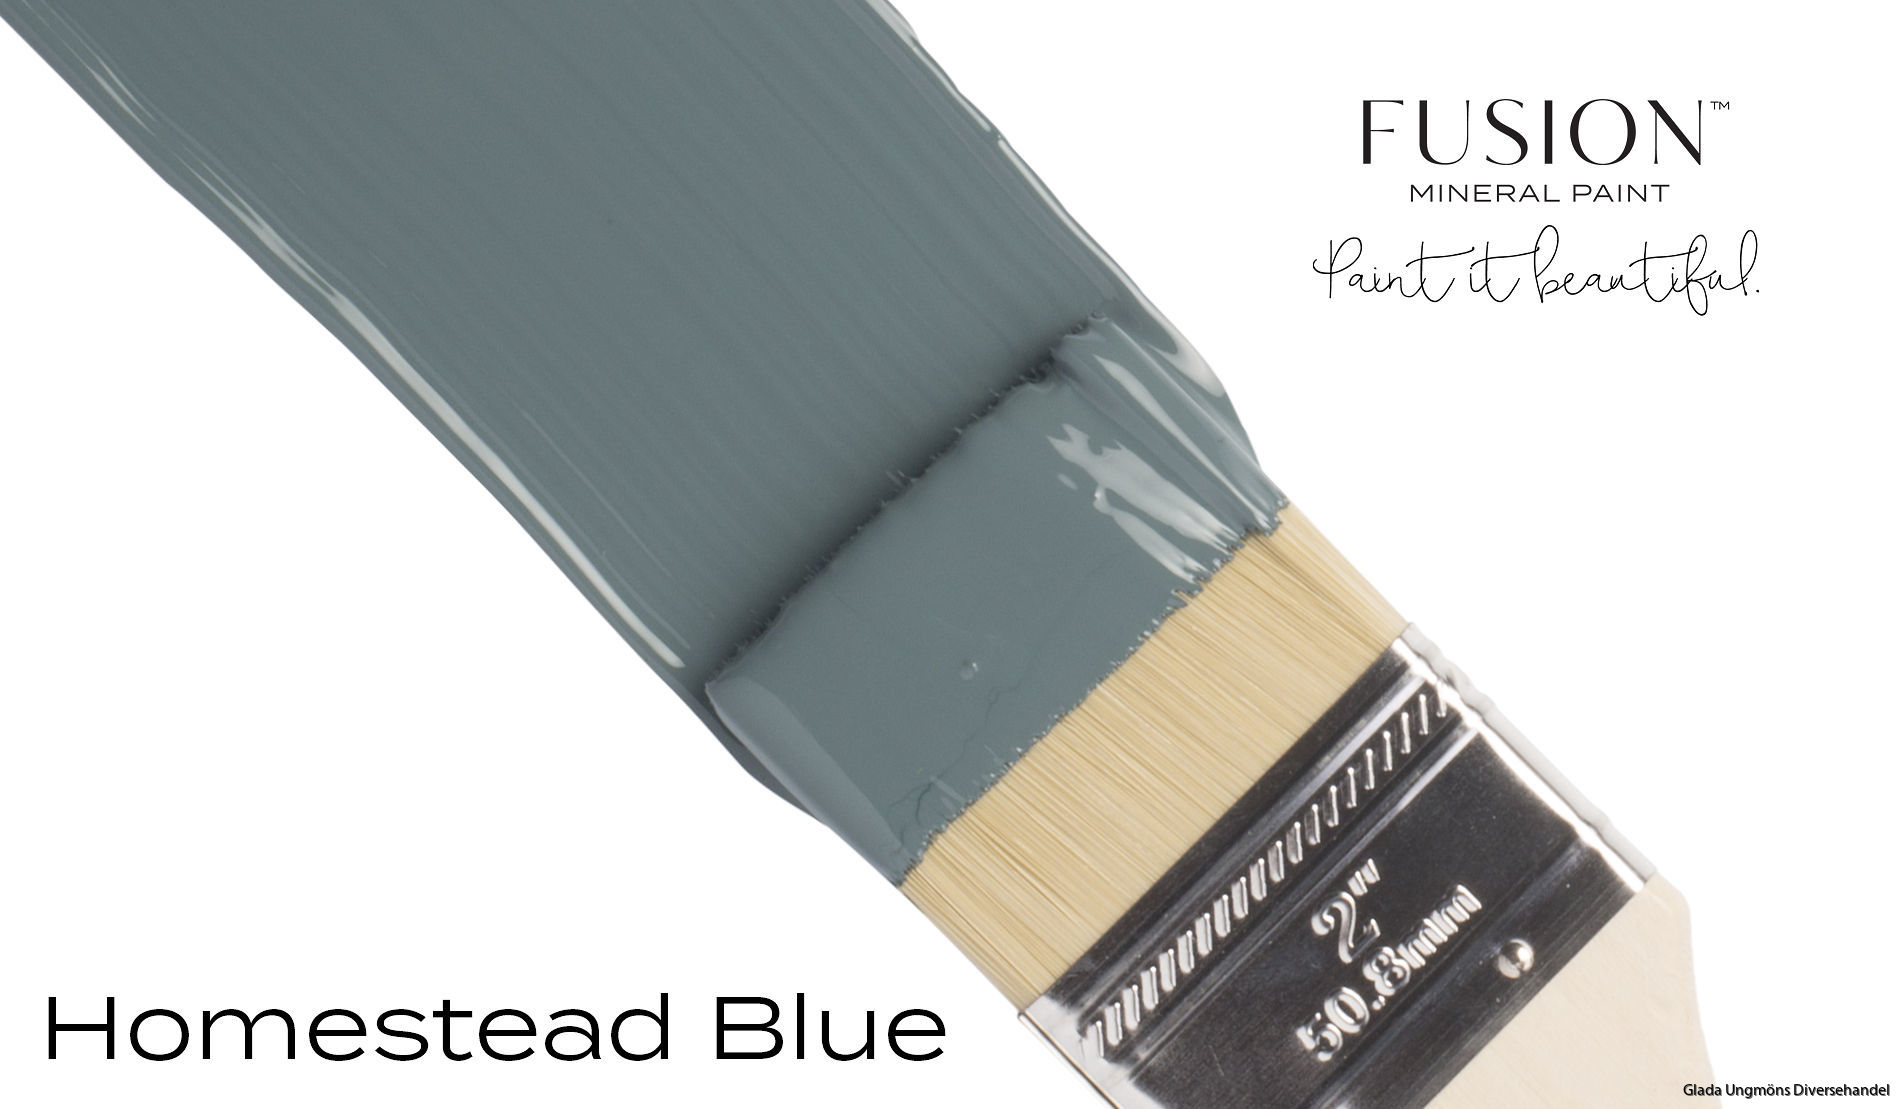 T4HOMESTEADBLUE